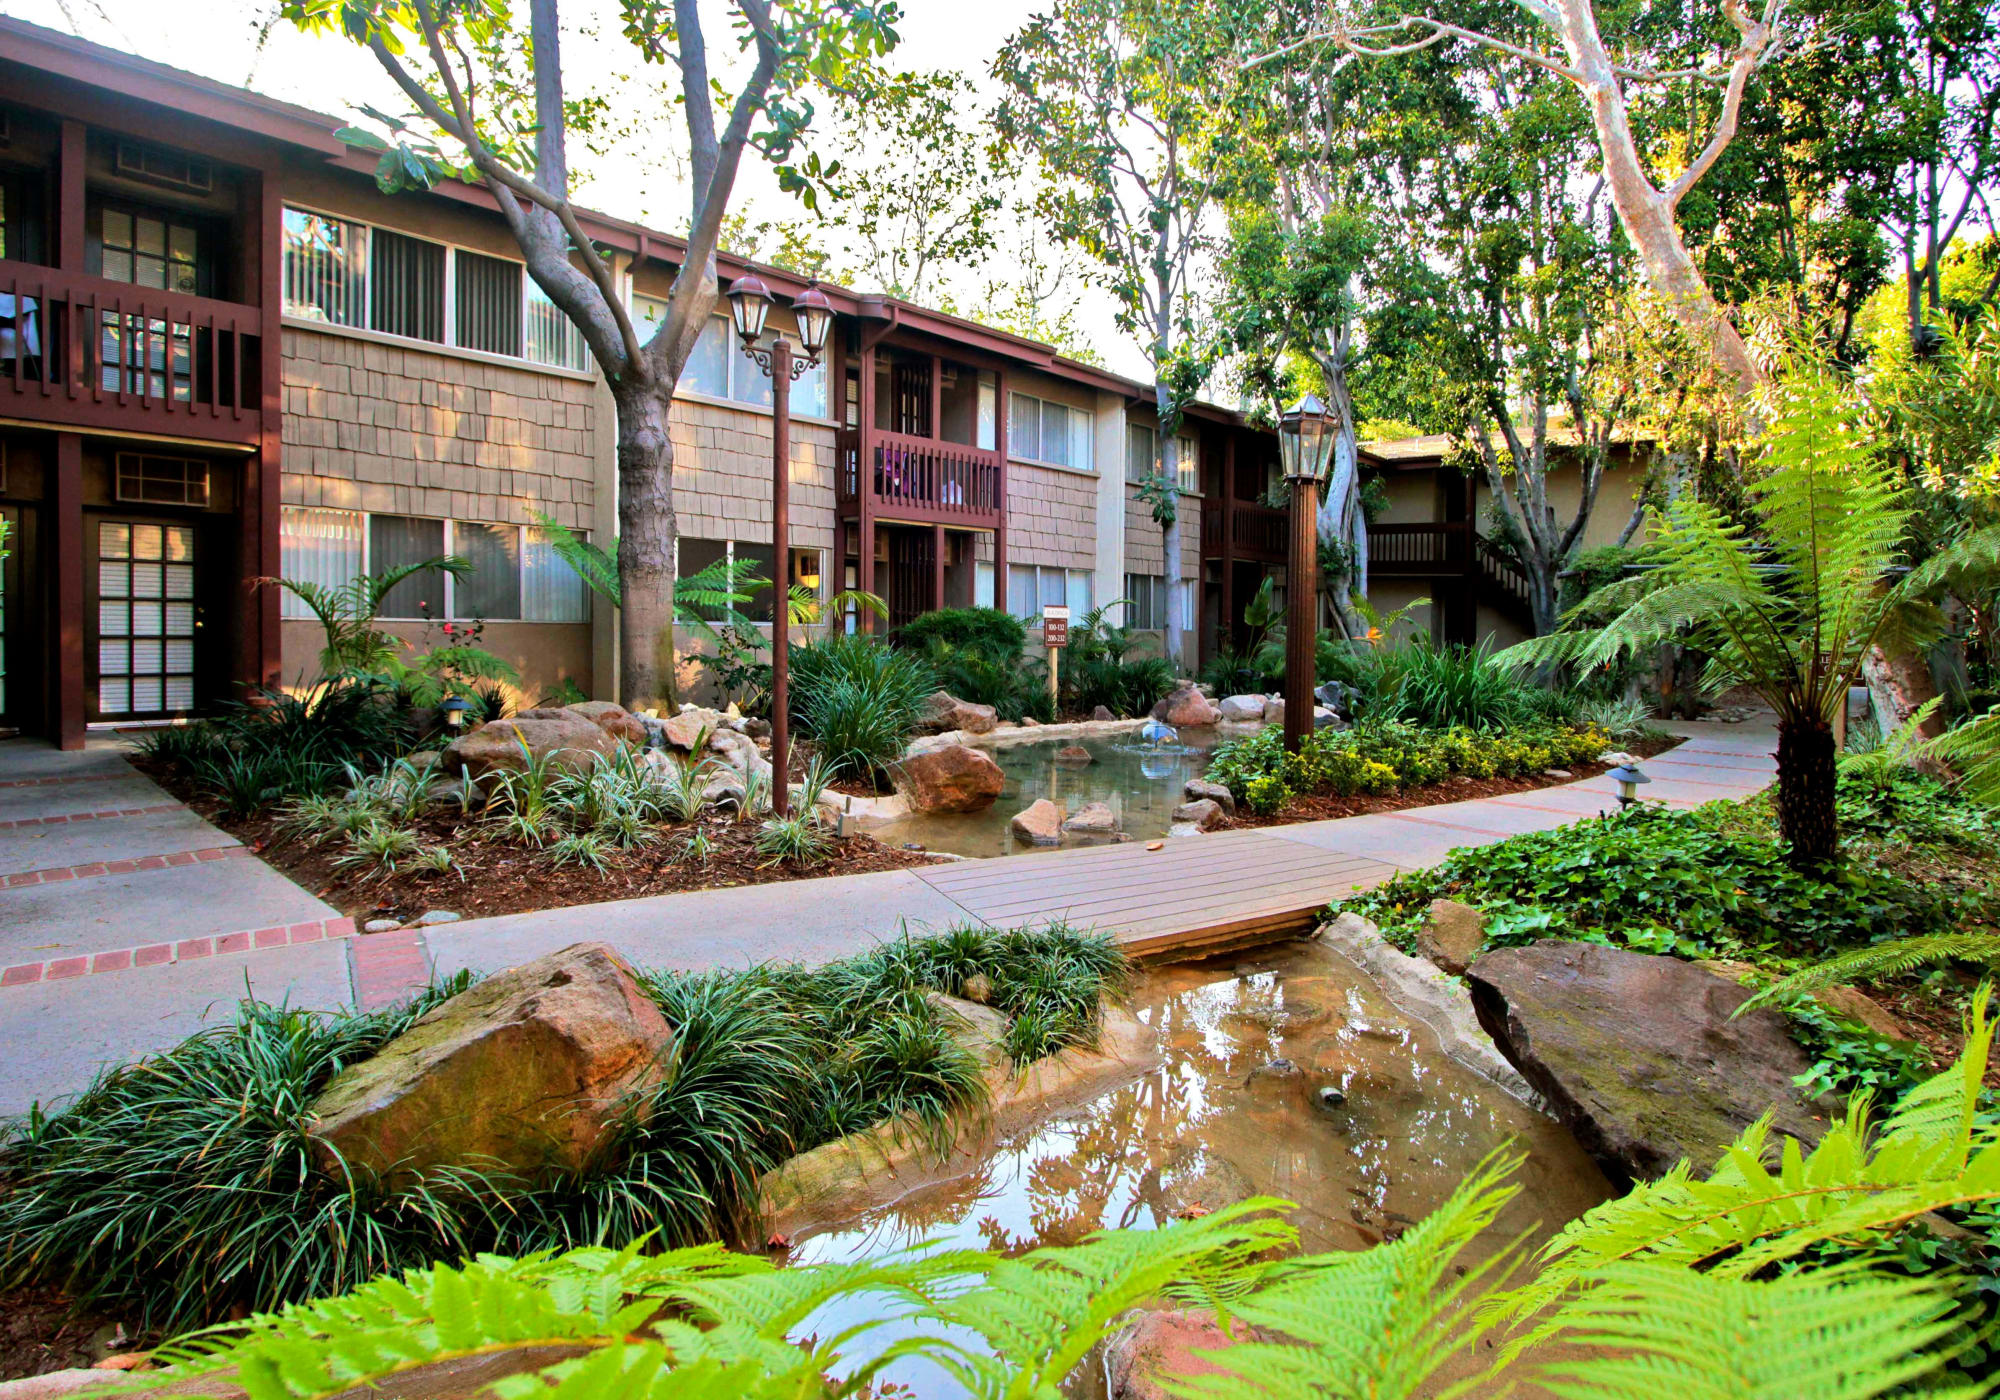 Lush landscaping and water features throughout the community at Rancho Los Feliz in Los Angeles, California